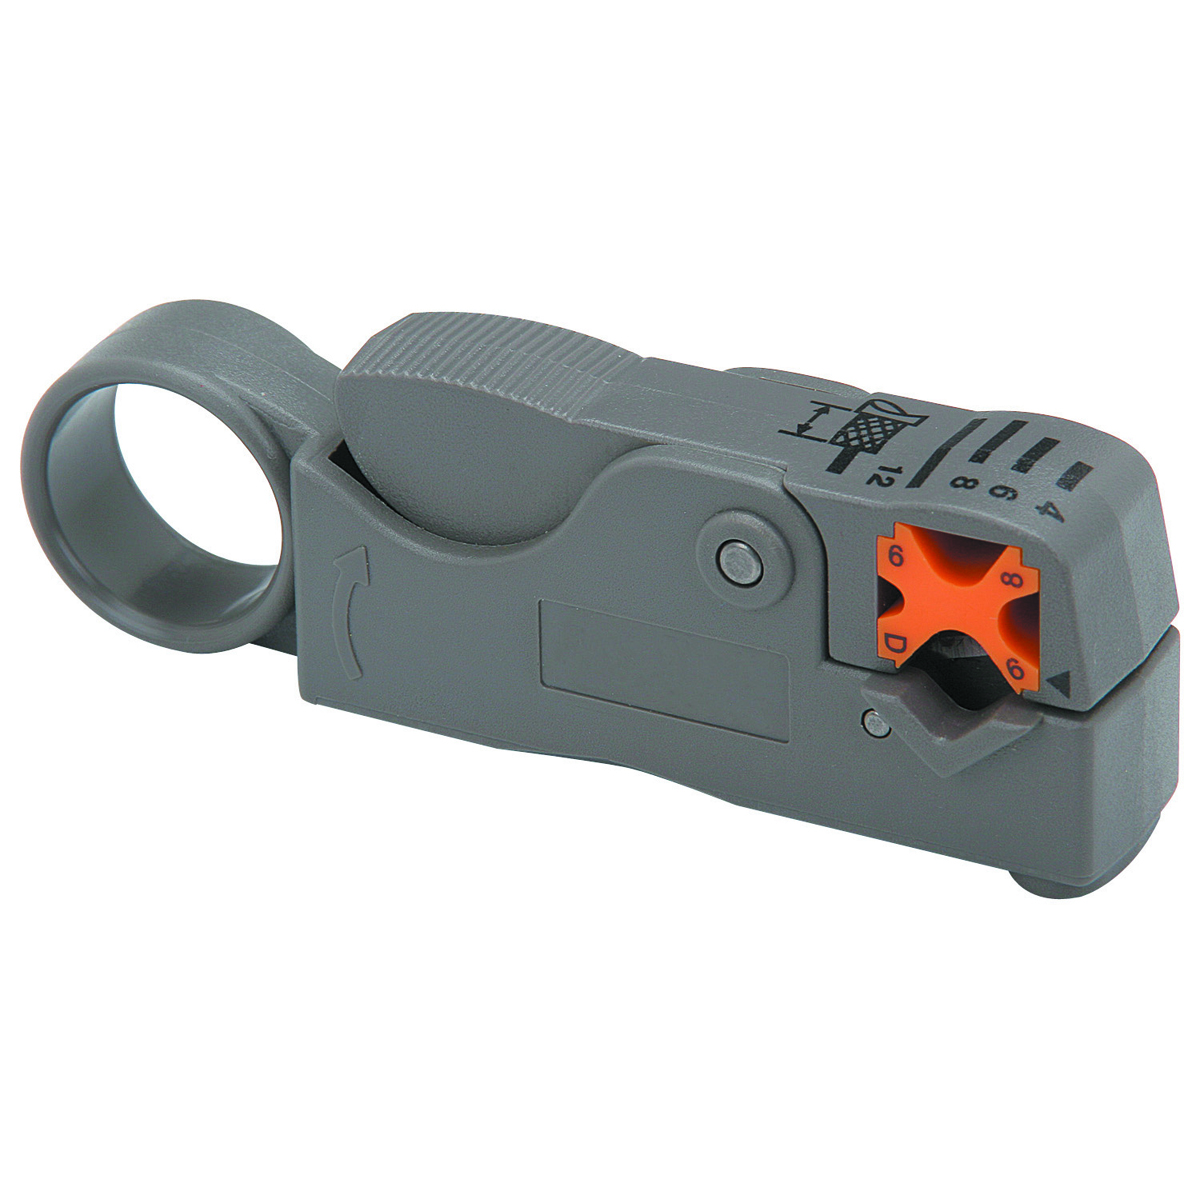 PITTSBURGH Rotary Coaxial Cable Stripper - Item 98953